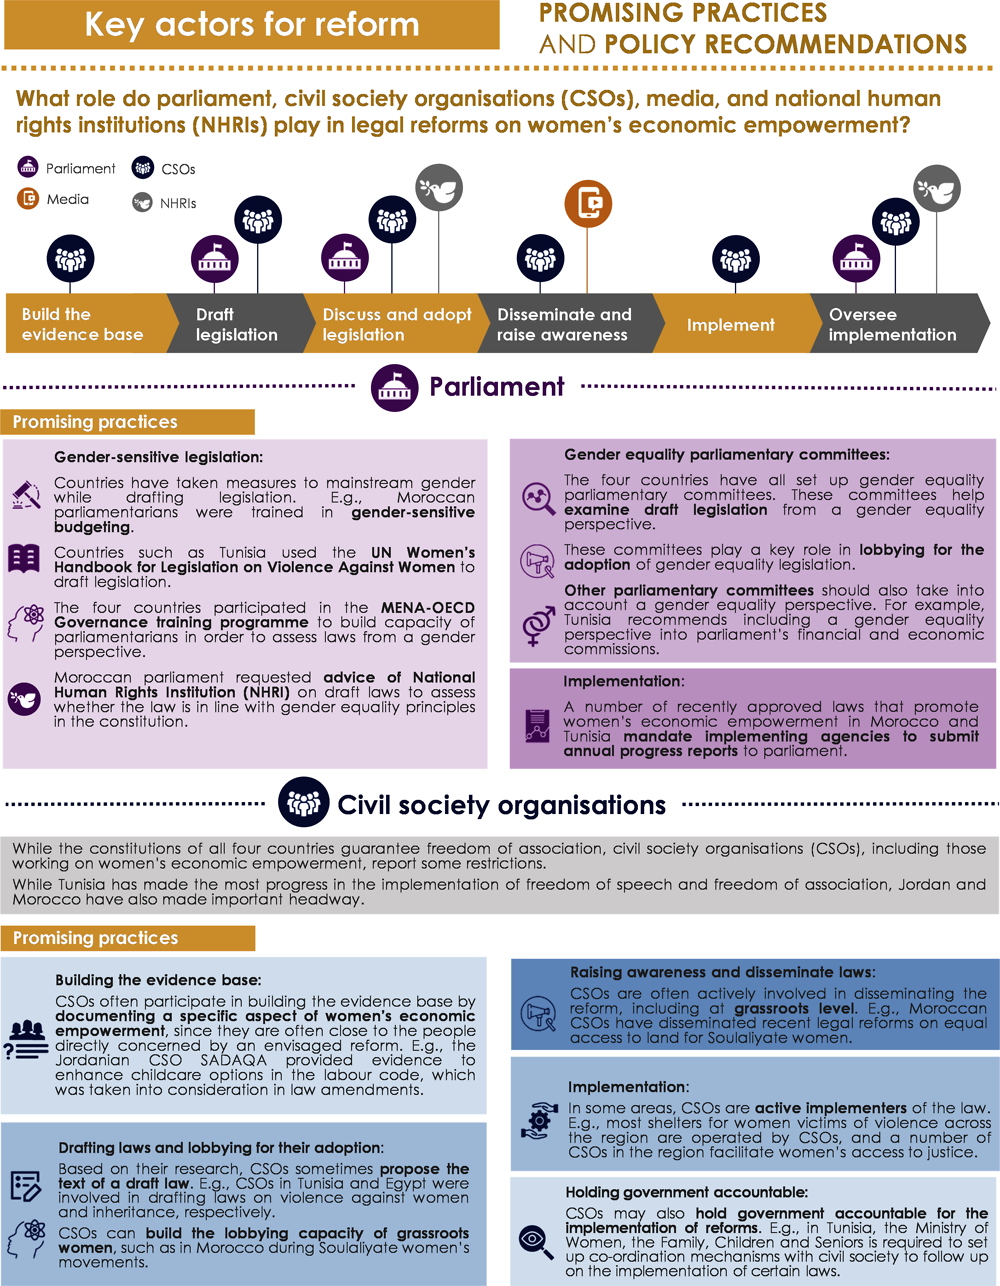 Infographic 5.1. Key actors for reform